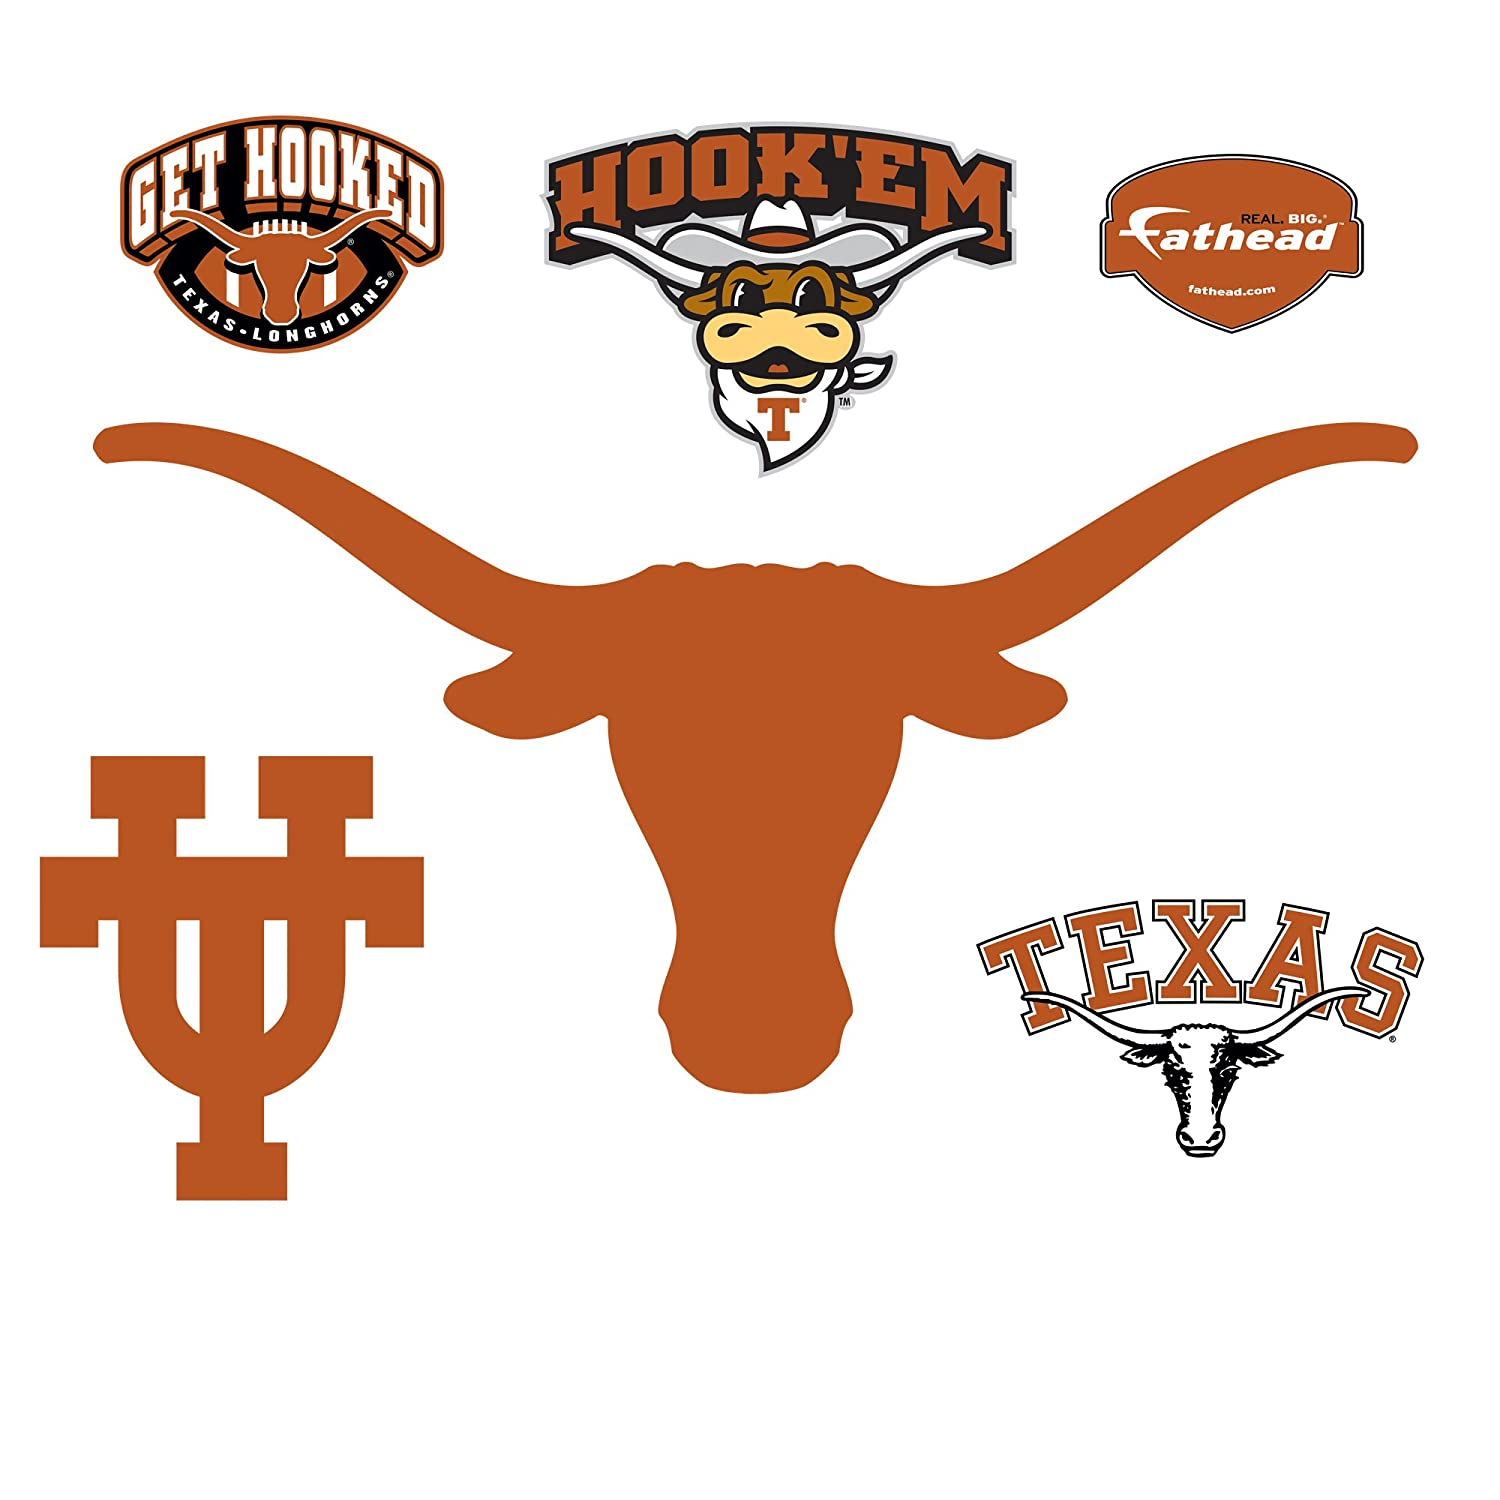 Amazon fathead university of texas longhorns logo wall decal amazon fathead university of texas longhorns logo wall decal sports fan wall banners sports outdoors sciox Images